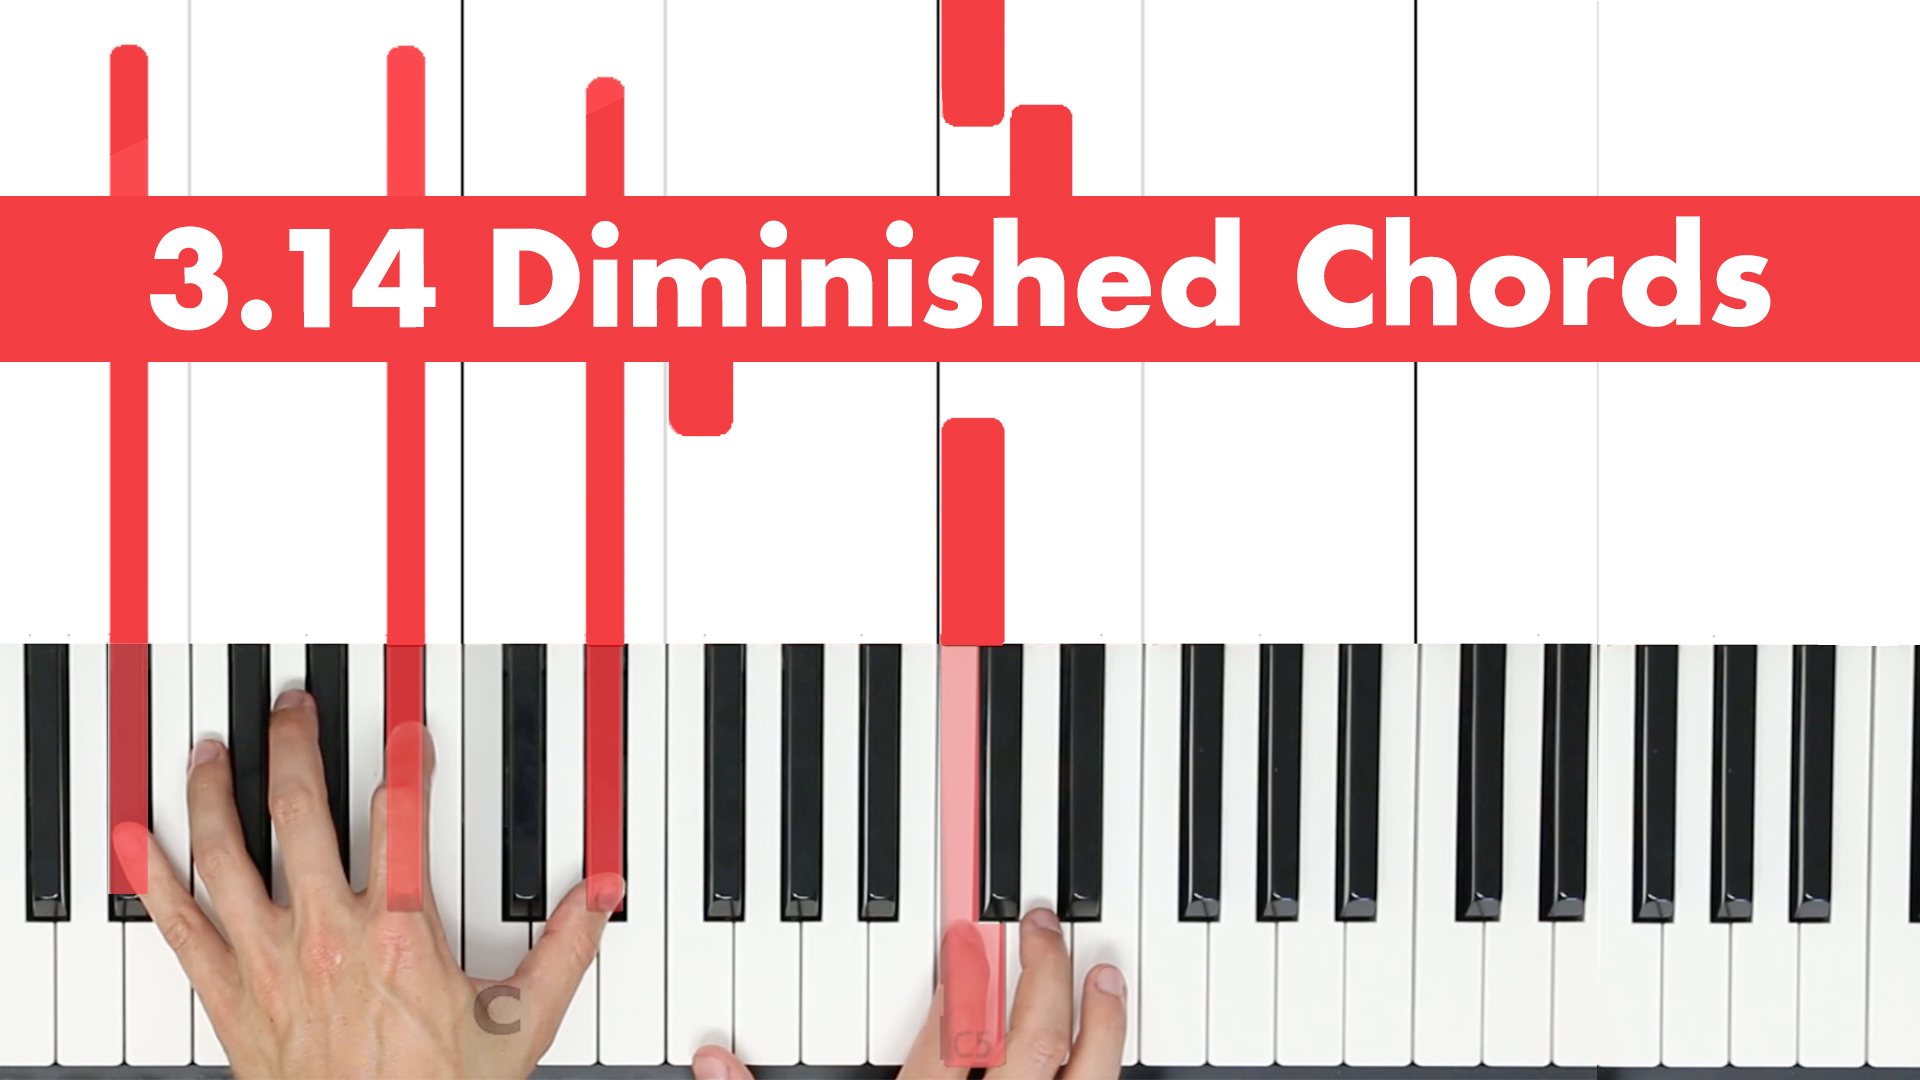 3.14 Diminished Chords